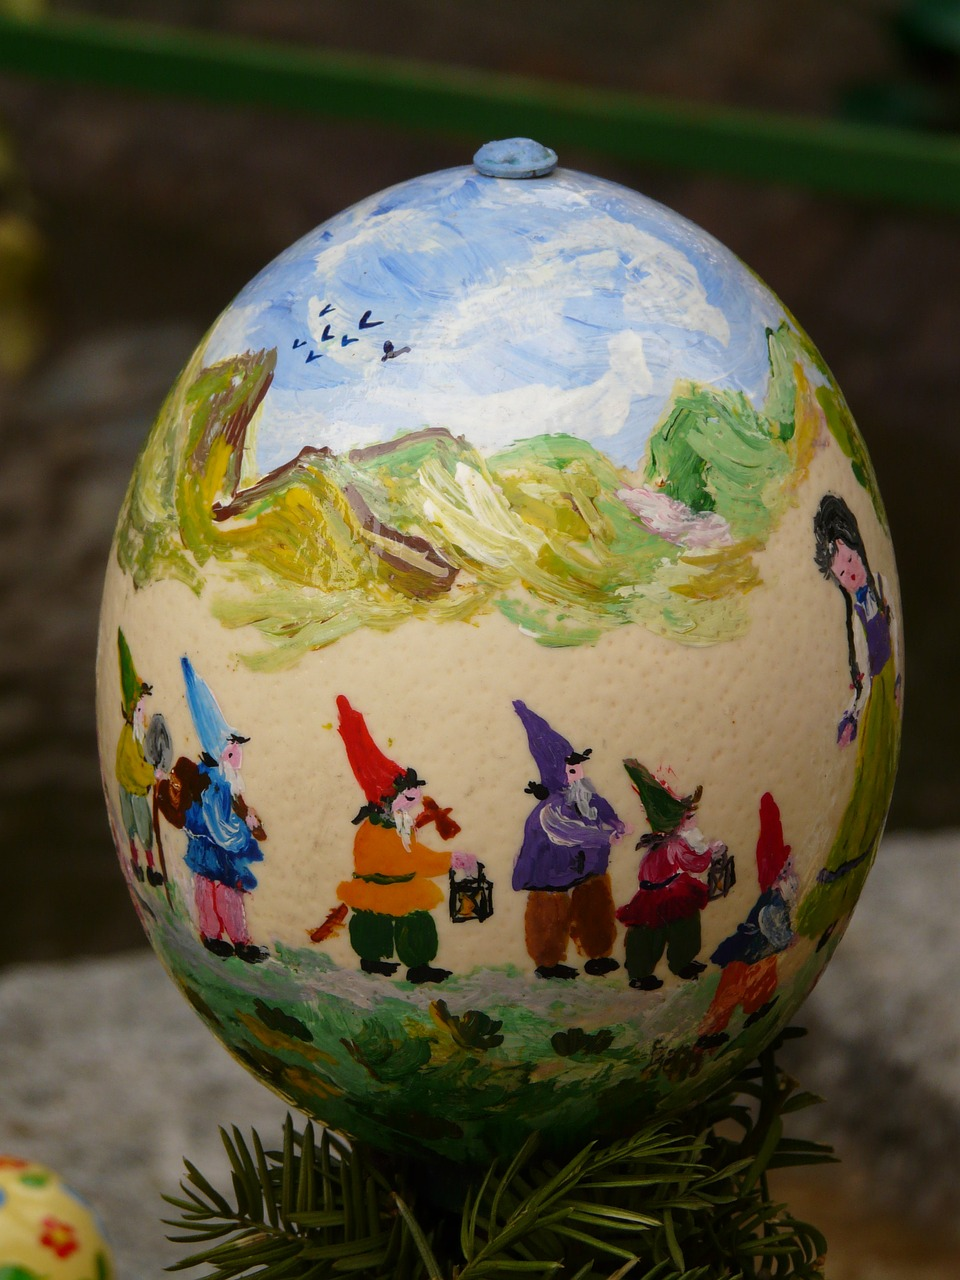 easter egg,easter,paint,easter egg painting,easter eggs,egg,painting,art,color,colorful,seven dwarfs,free pictures, free photos, free images, royalty free, free illustrations, public domain